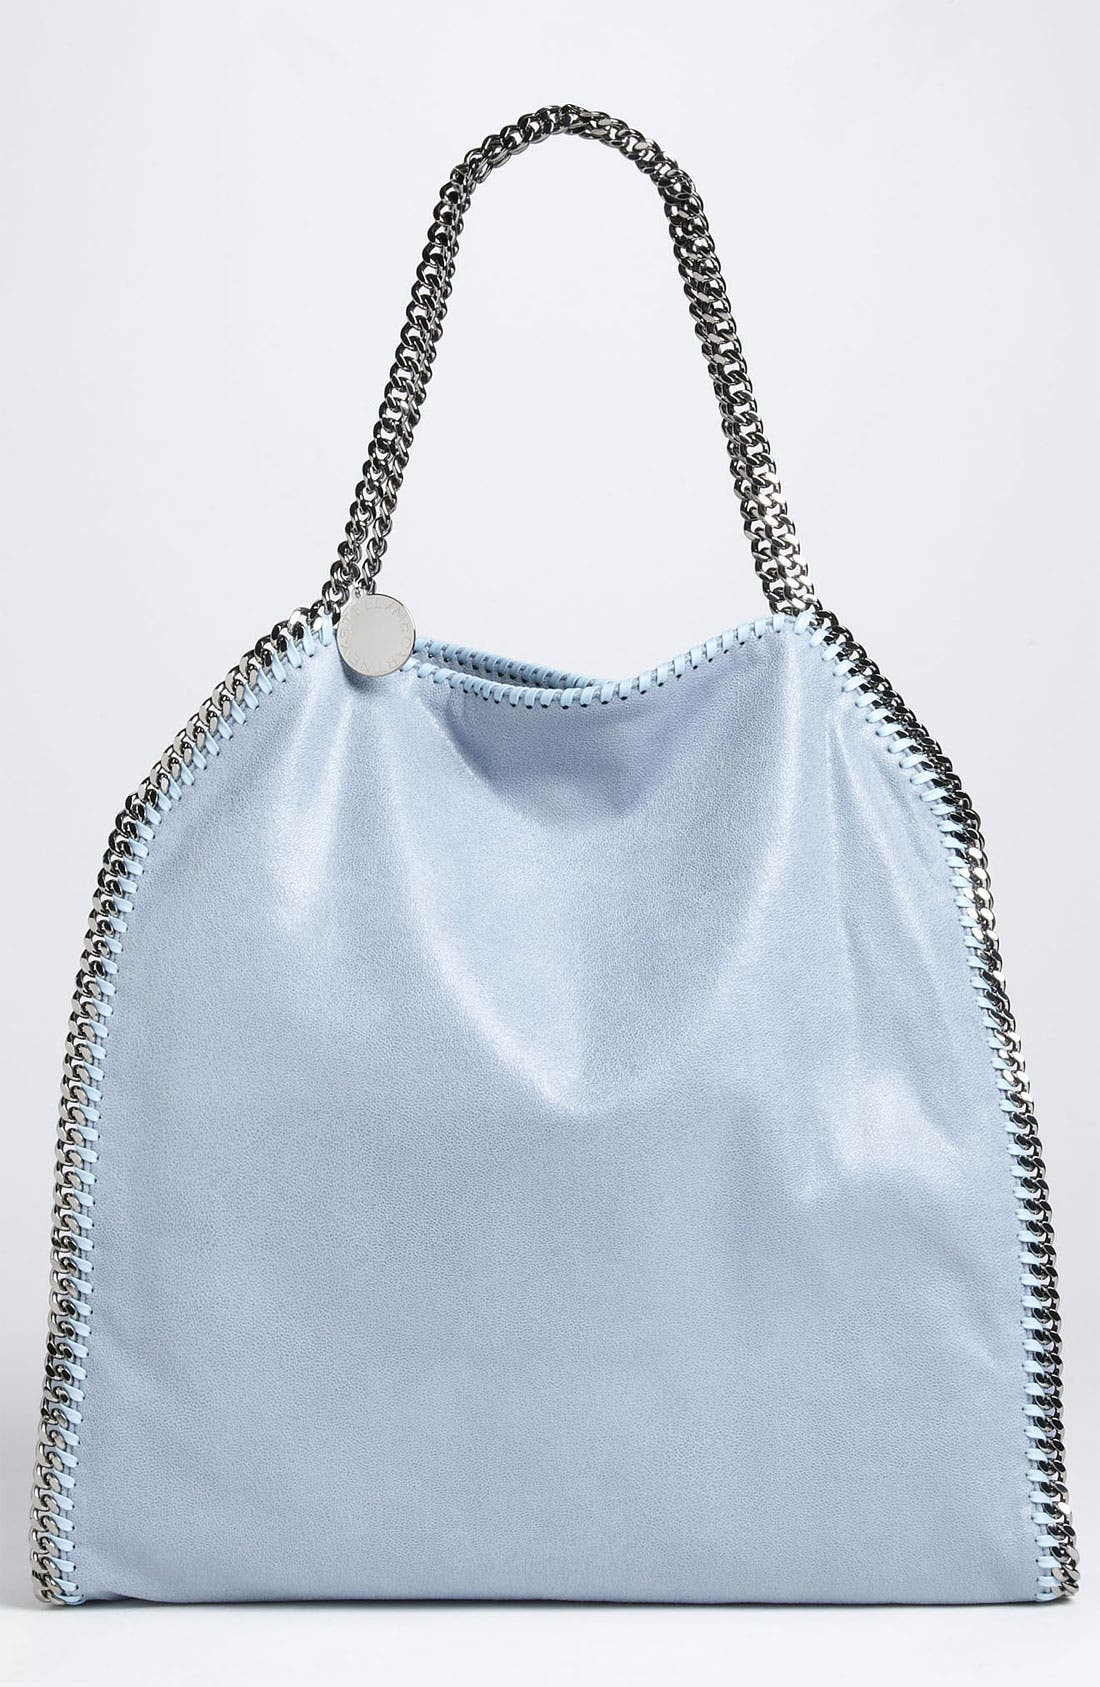 Main Image - Stella McCartney 'Large Falabella - Shaggy Deer' Faux Leather Tote